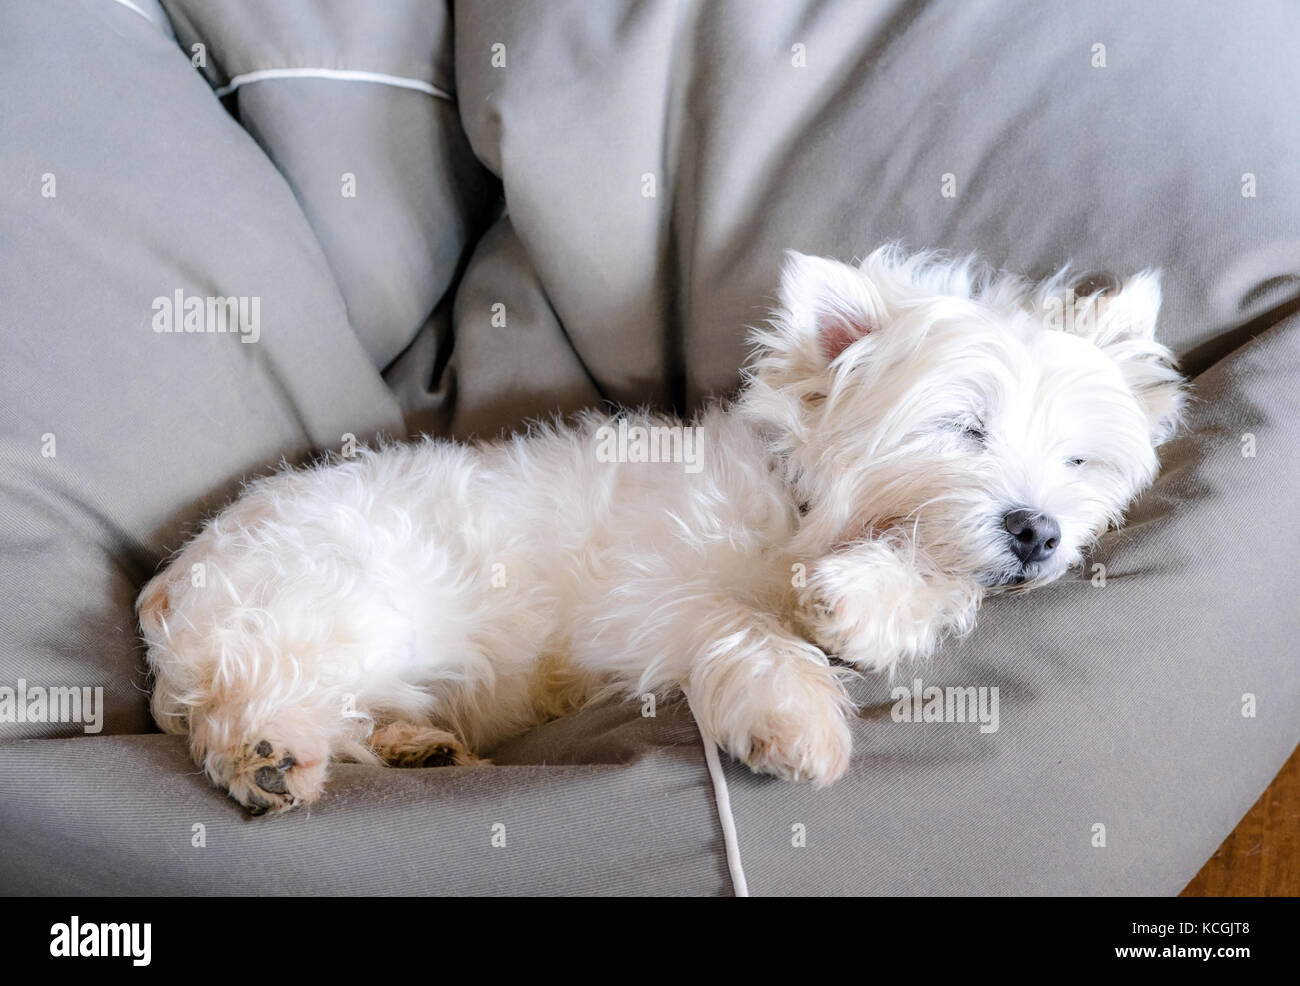 Senior west highland white terrier westie dog sleeping in a bean bag looking cute and comfortable - Stock Image